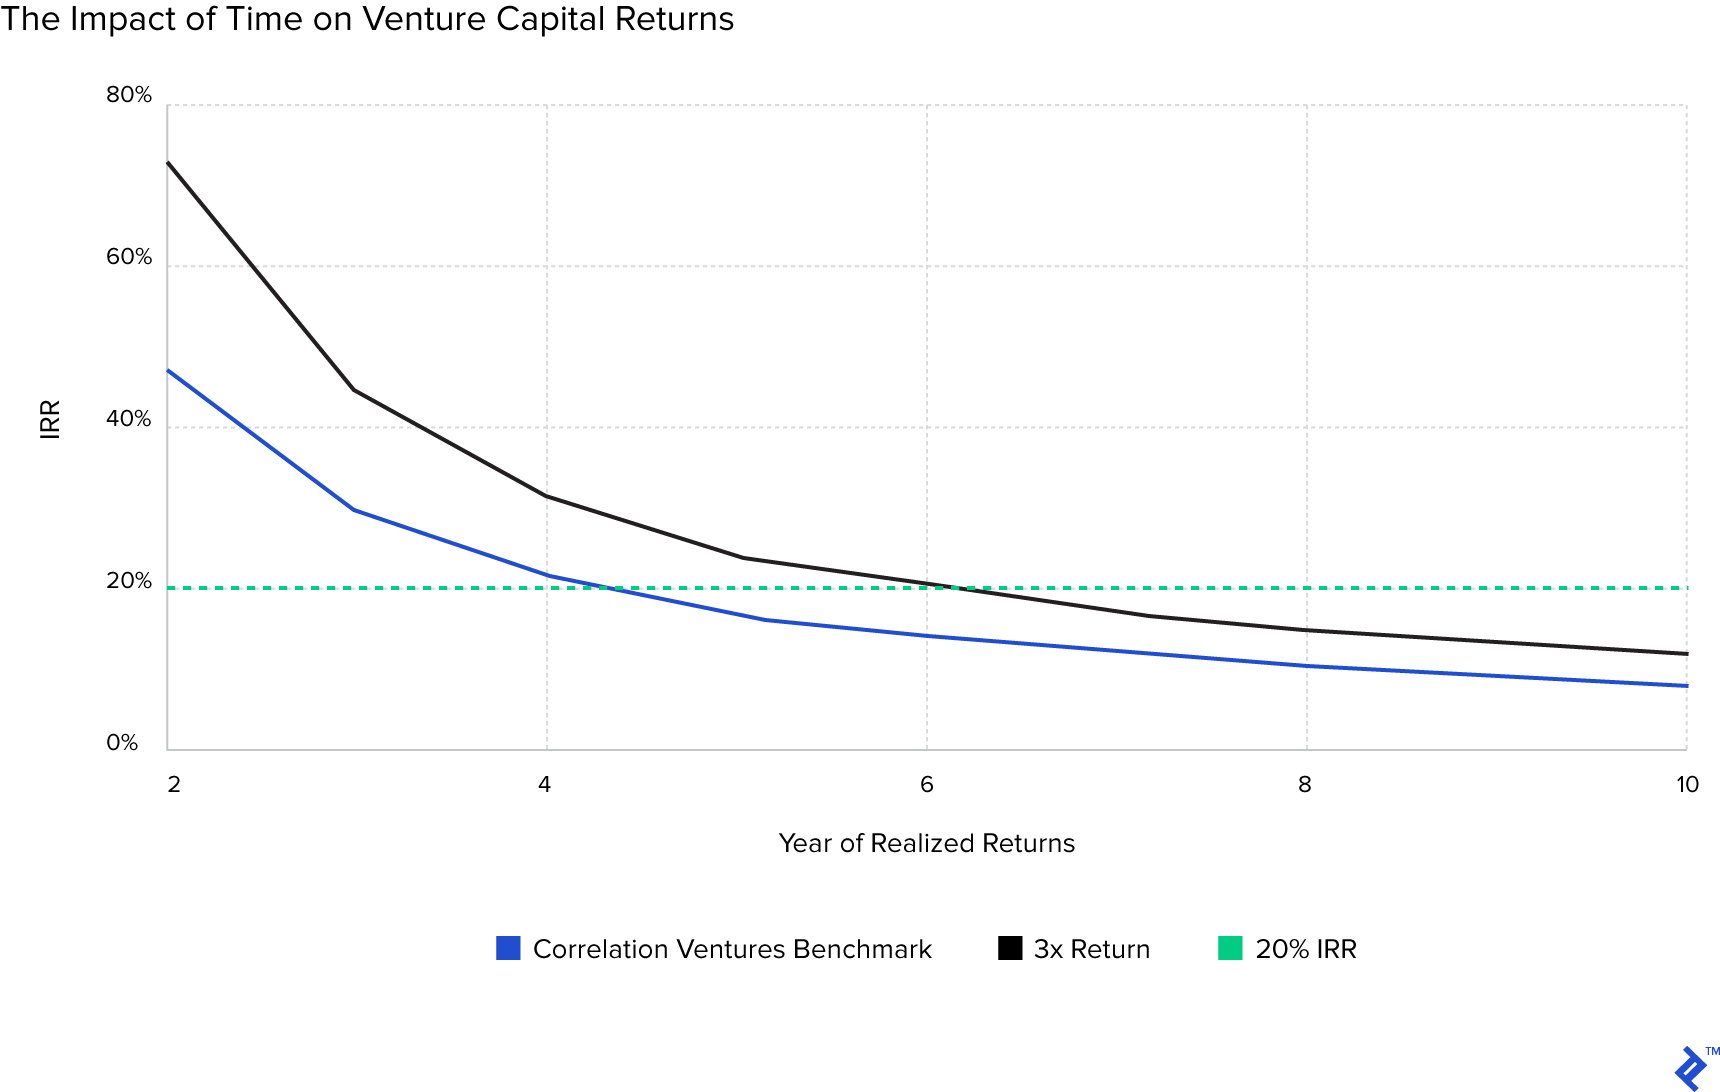 Graph showing the impact of time on venture capital returns.